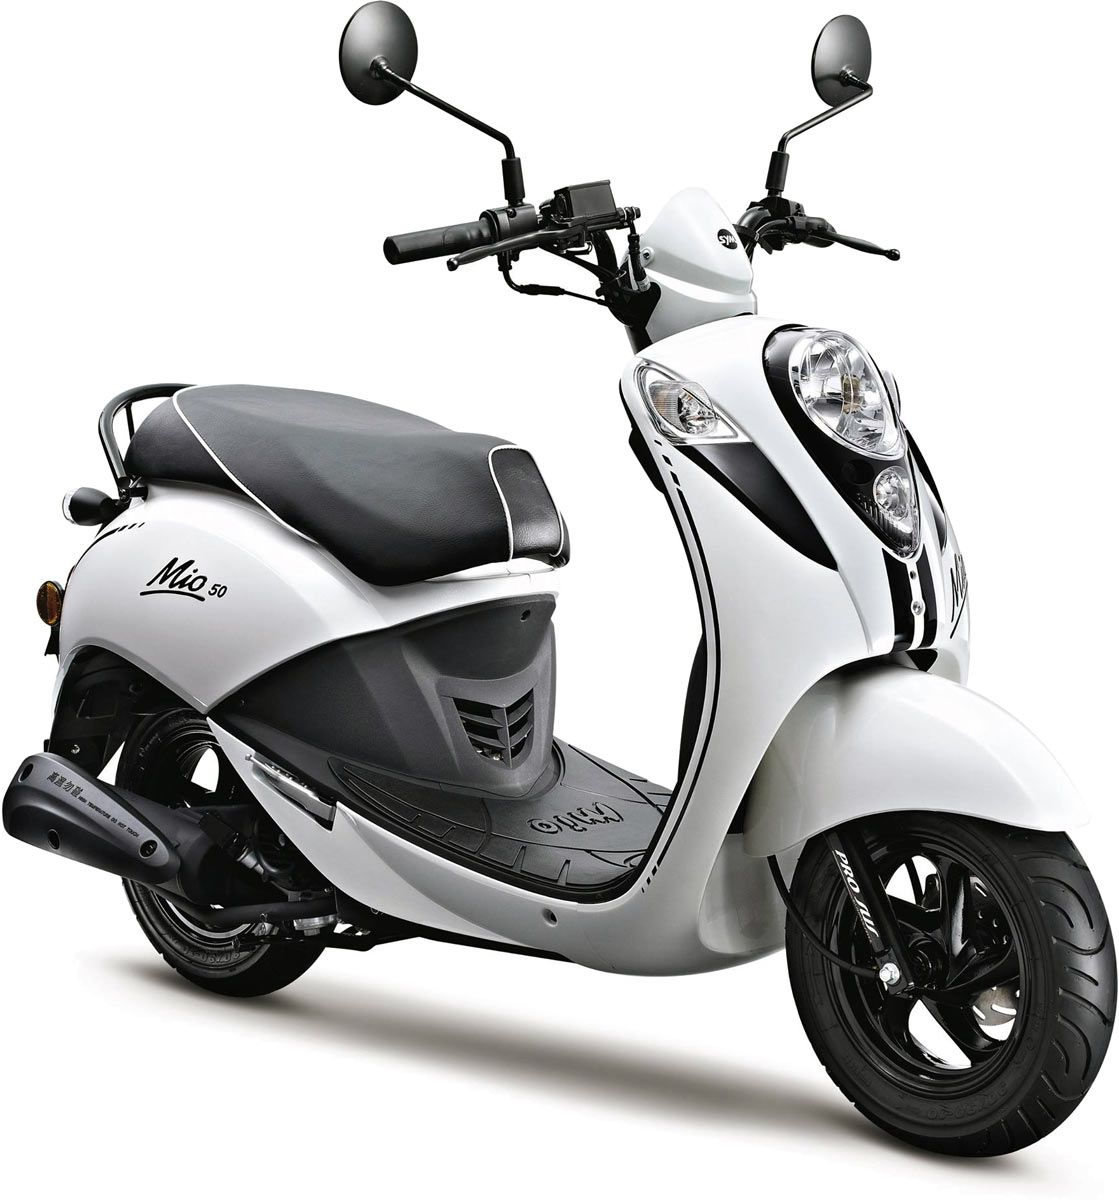 sym mio 50 le scooter r tro voit en noir et blanc news scooter 50cc and scooters. Black Bedroom Furniture Sets. Home Design Ideas